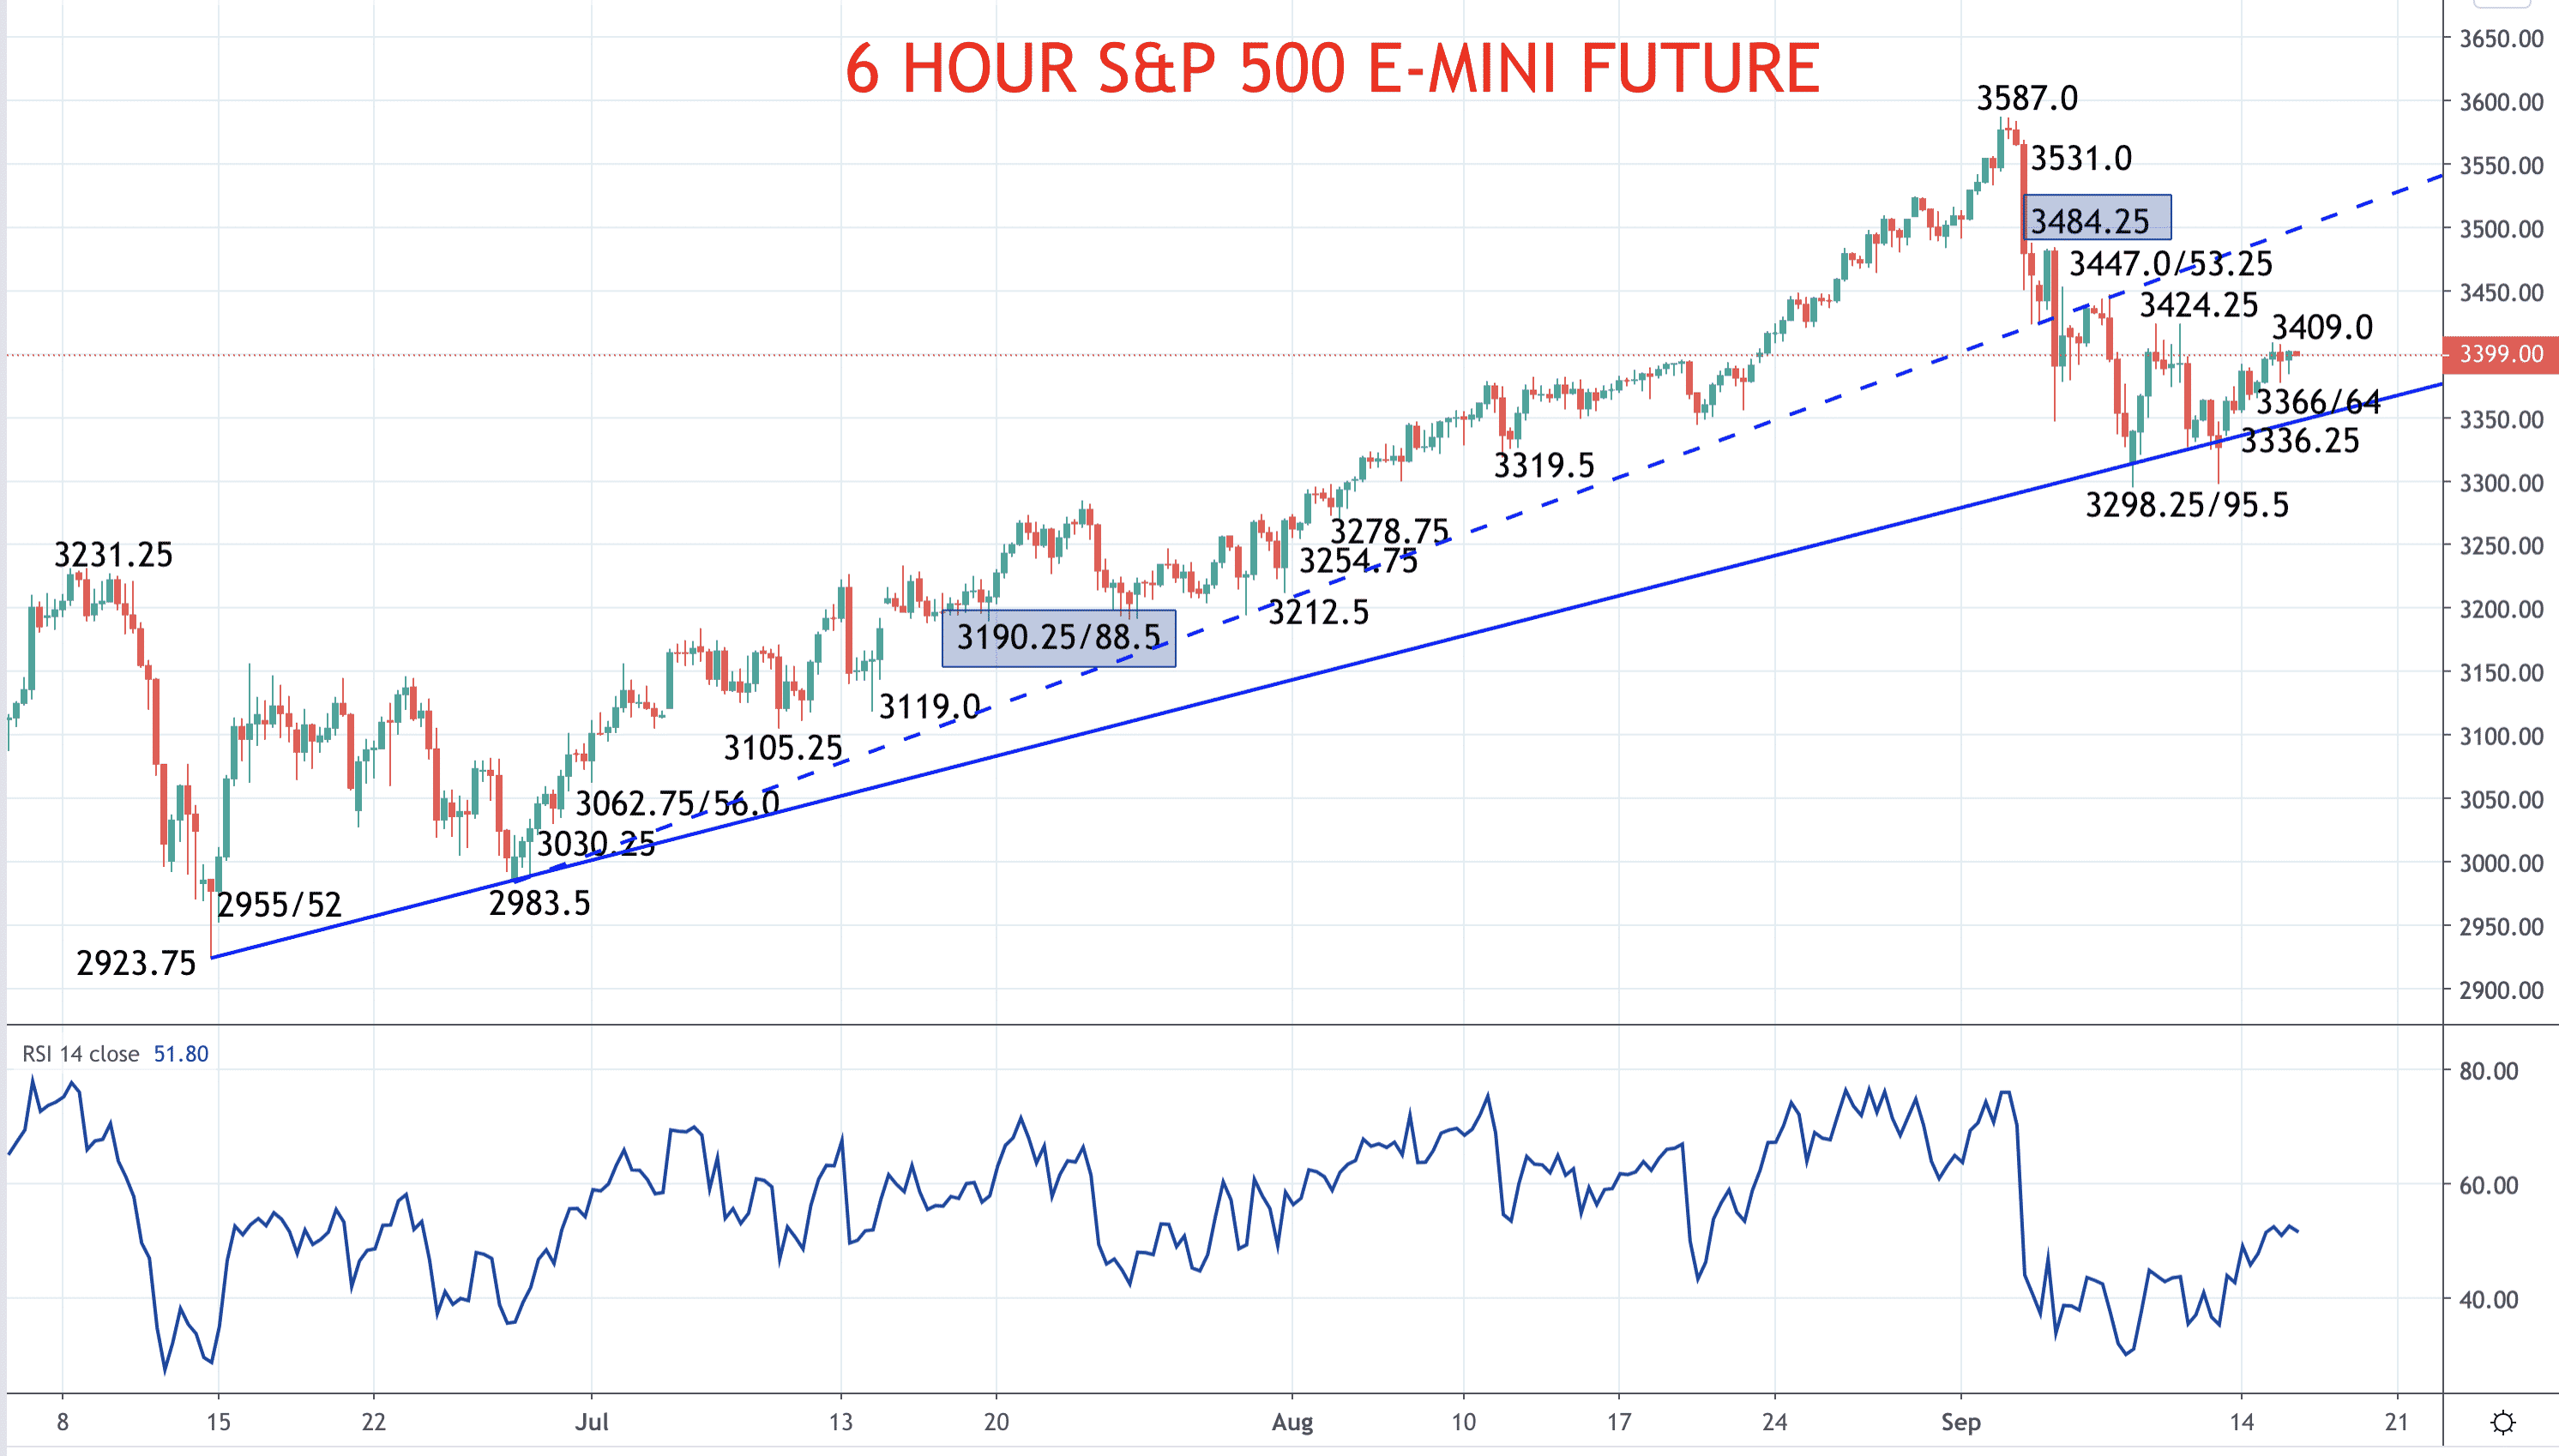 S&P 500 poised for bull signal into the Fed (S&P 500 forecast) Image